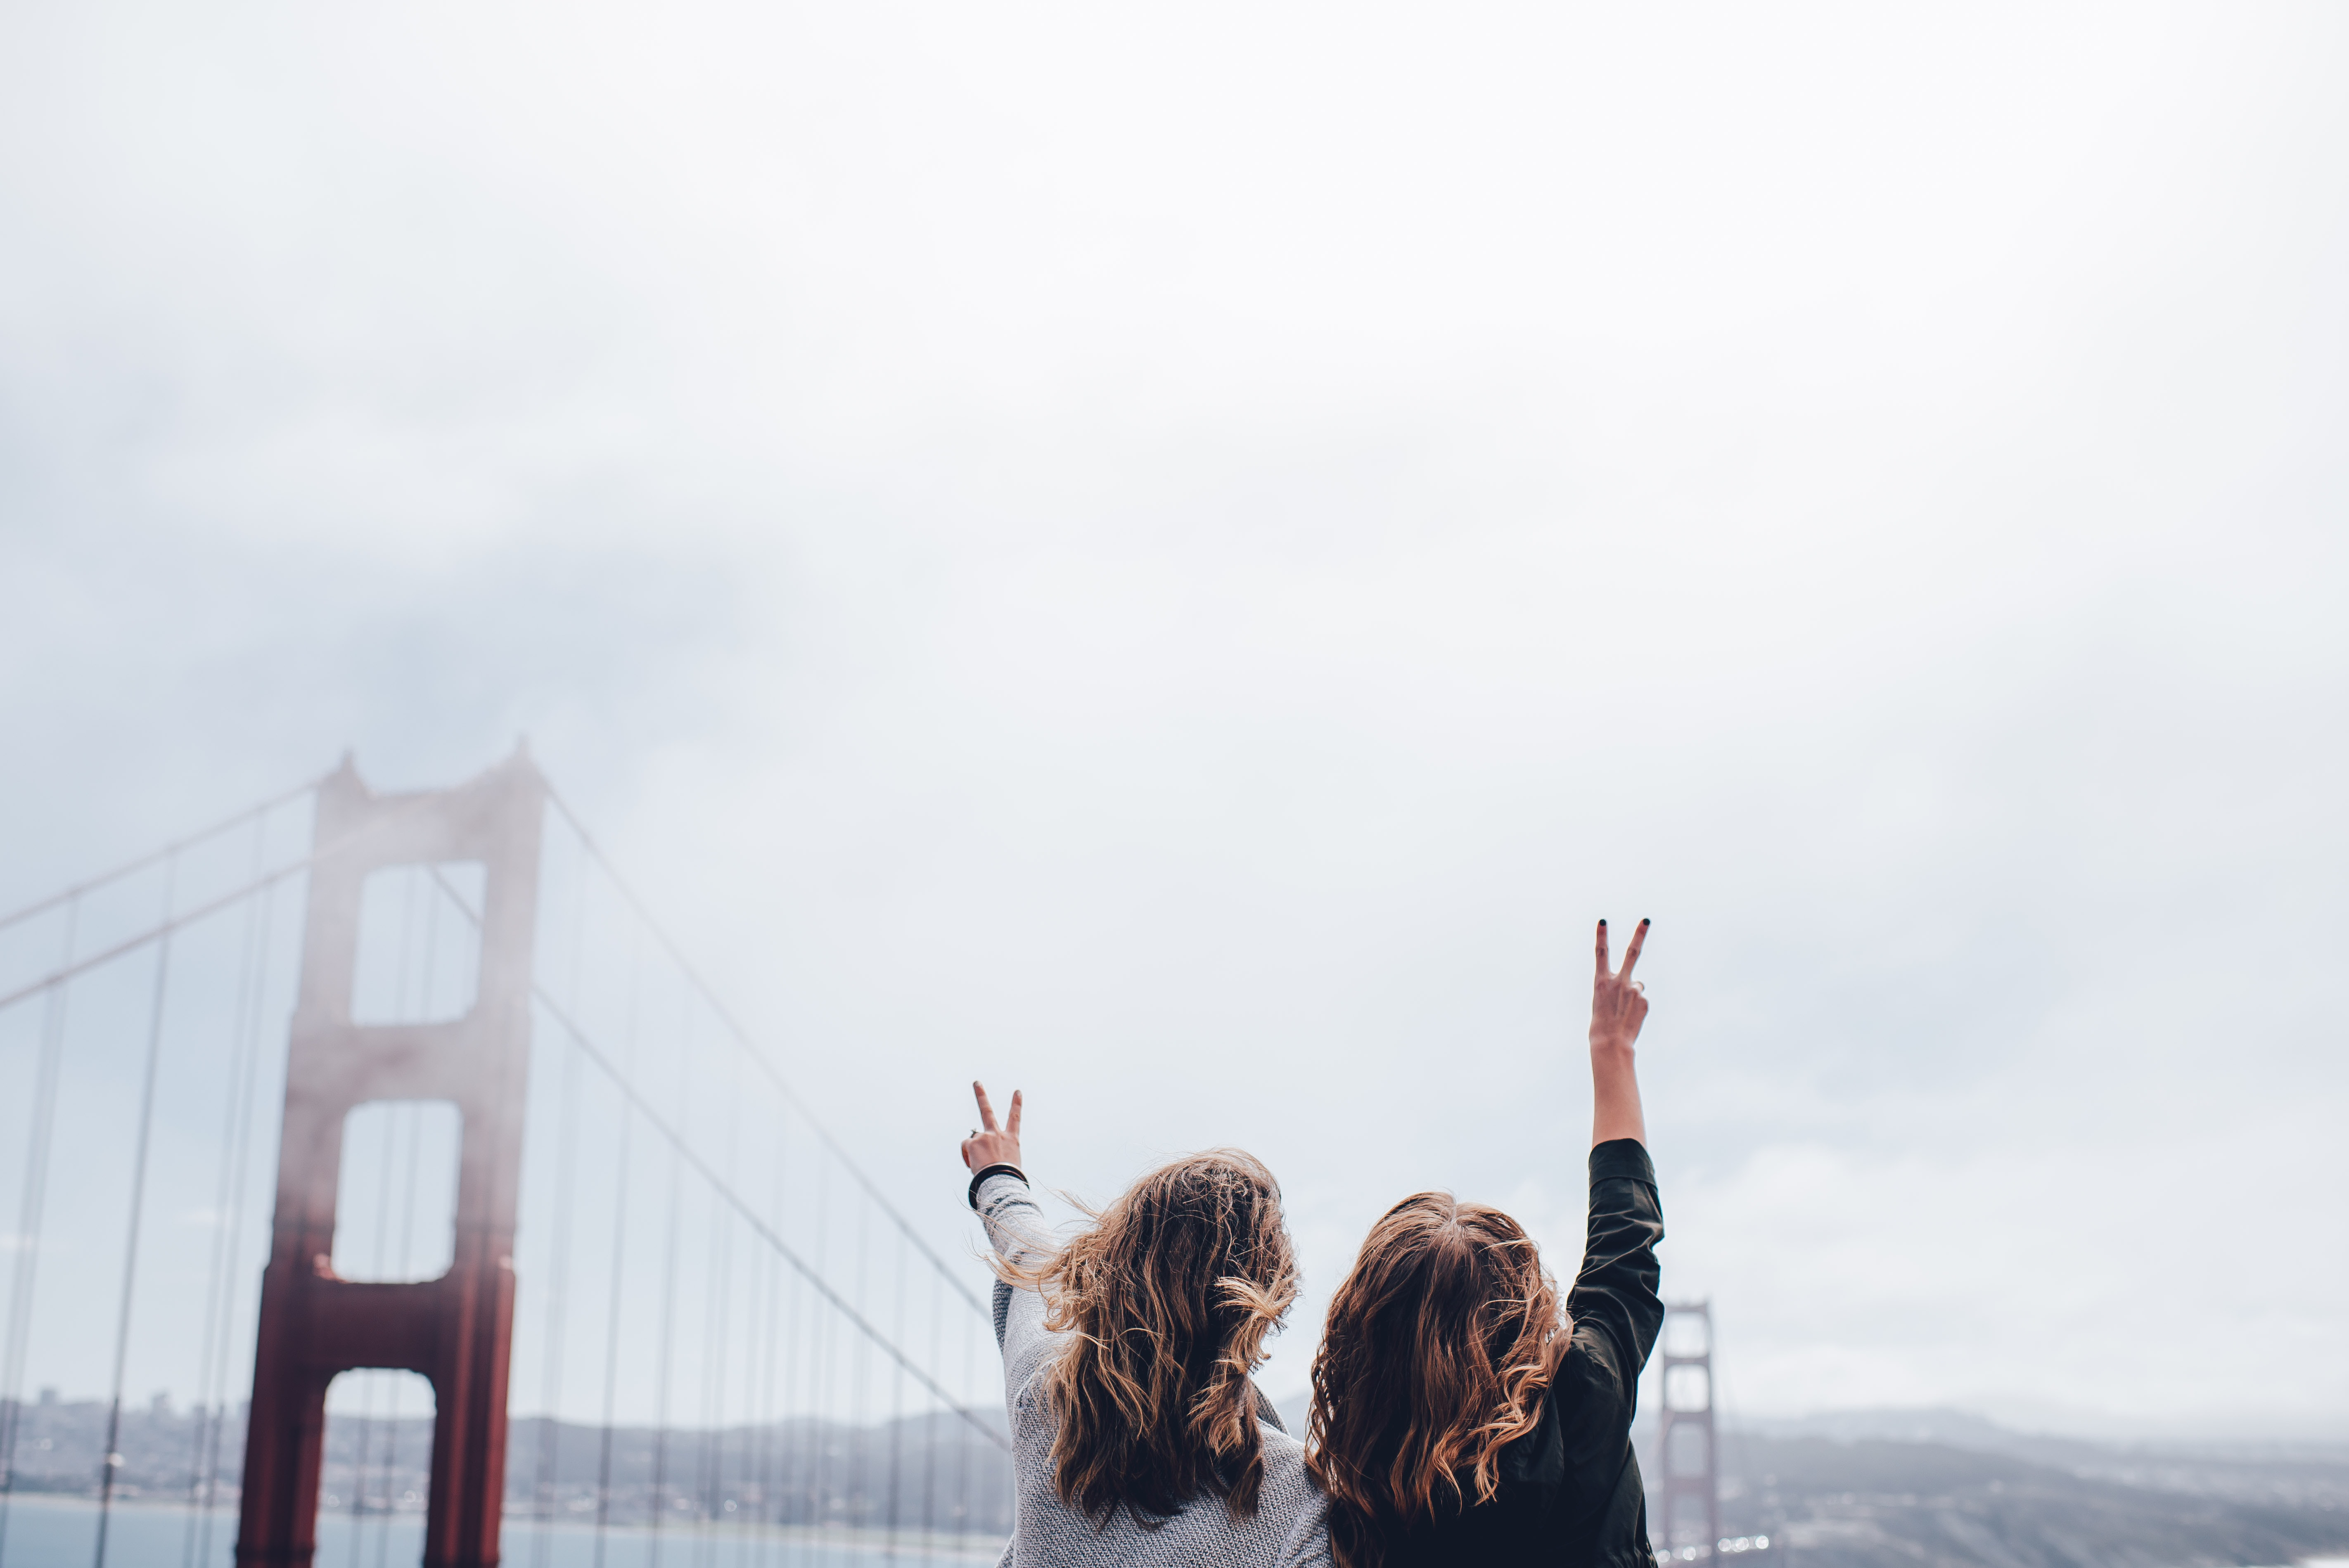 Two women giving the V gesture near San Francisco's Golden Gate Bridge